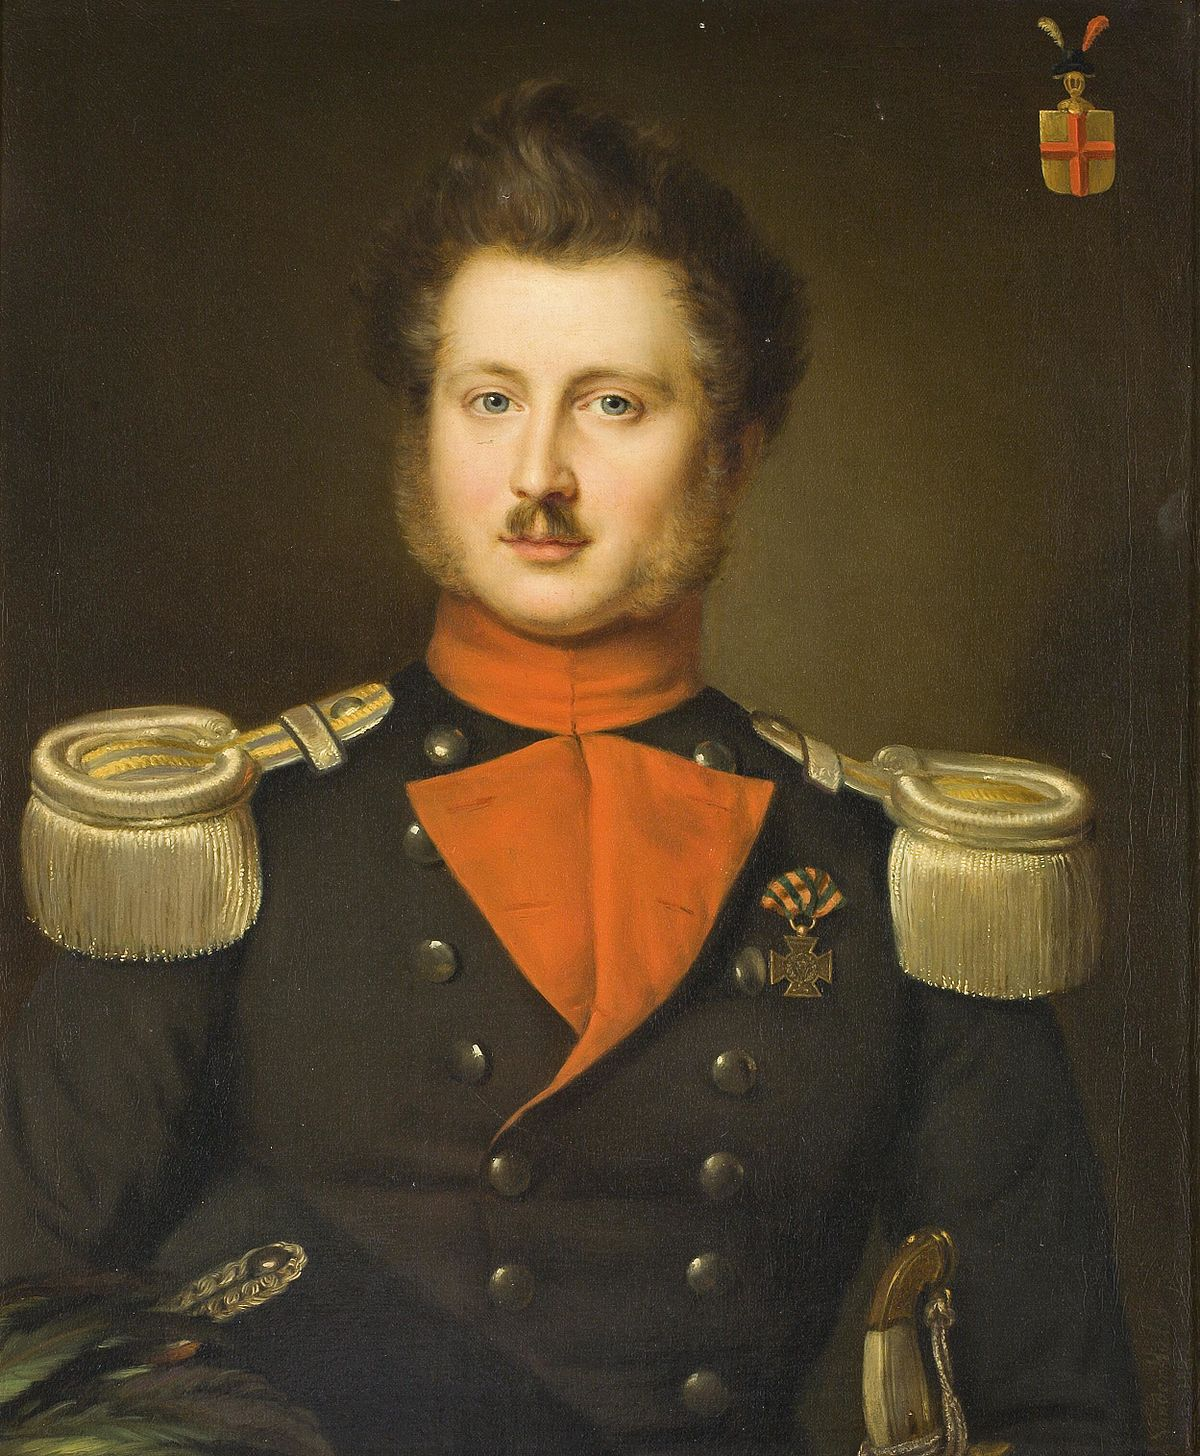 Jacob Derk Carel Baron van Heeckeren (1809-1875), by Jean-Baptiste Van der Hulst.jpg